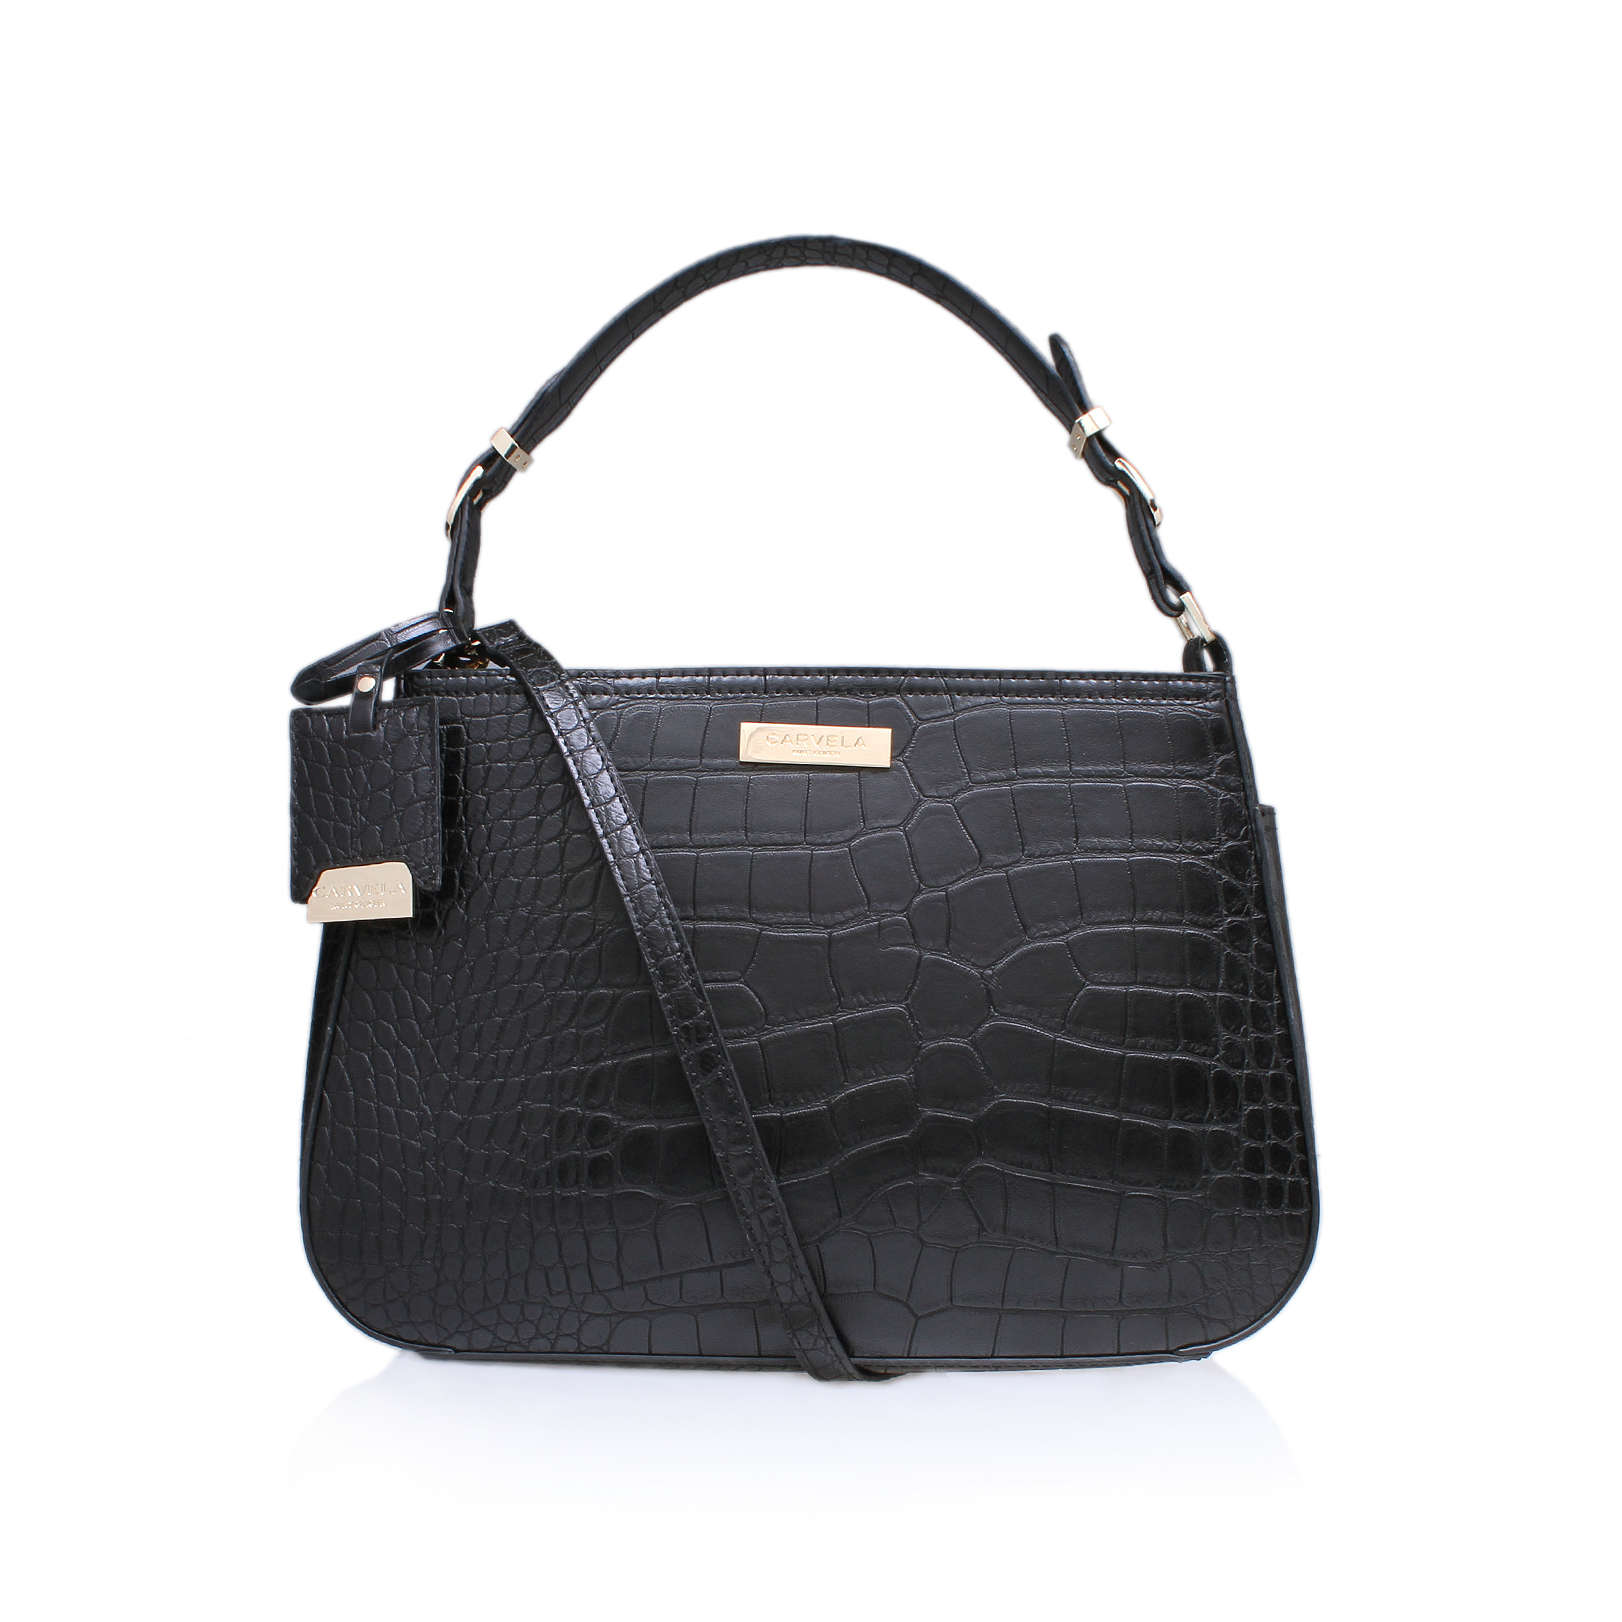 POLLY STRUCTURED HOBO